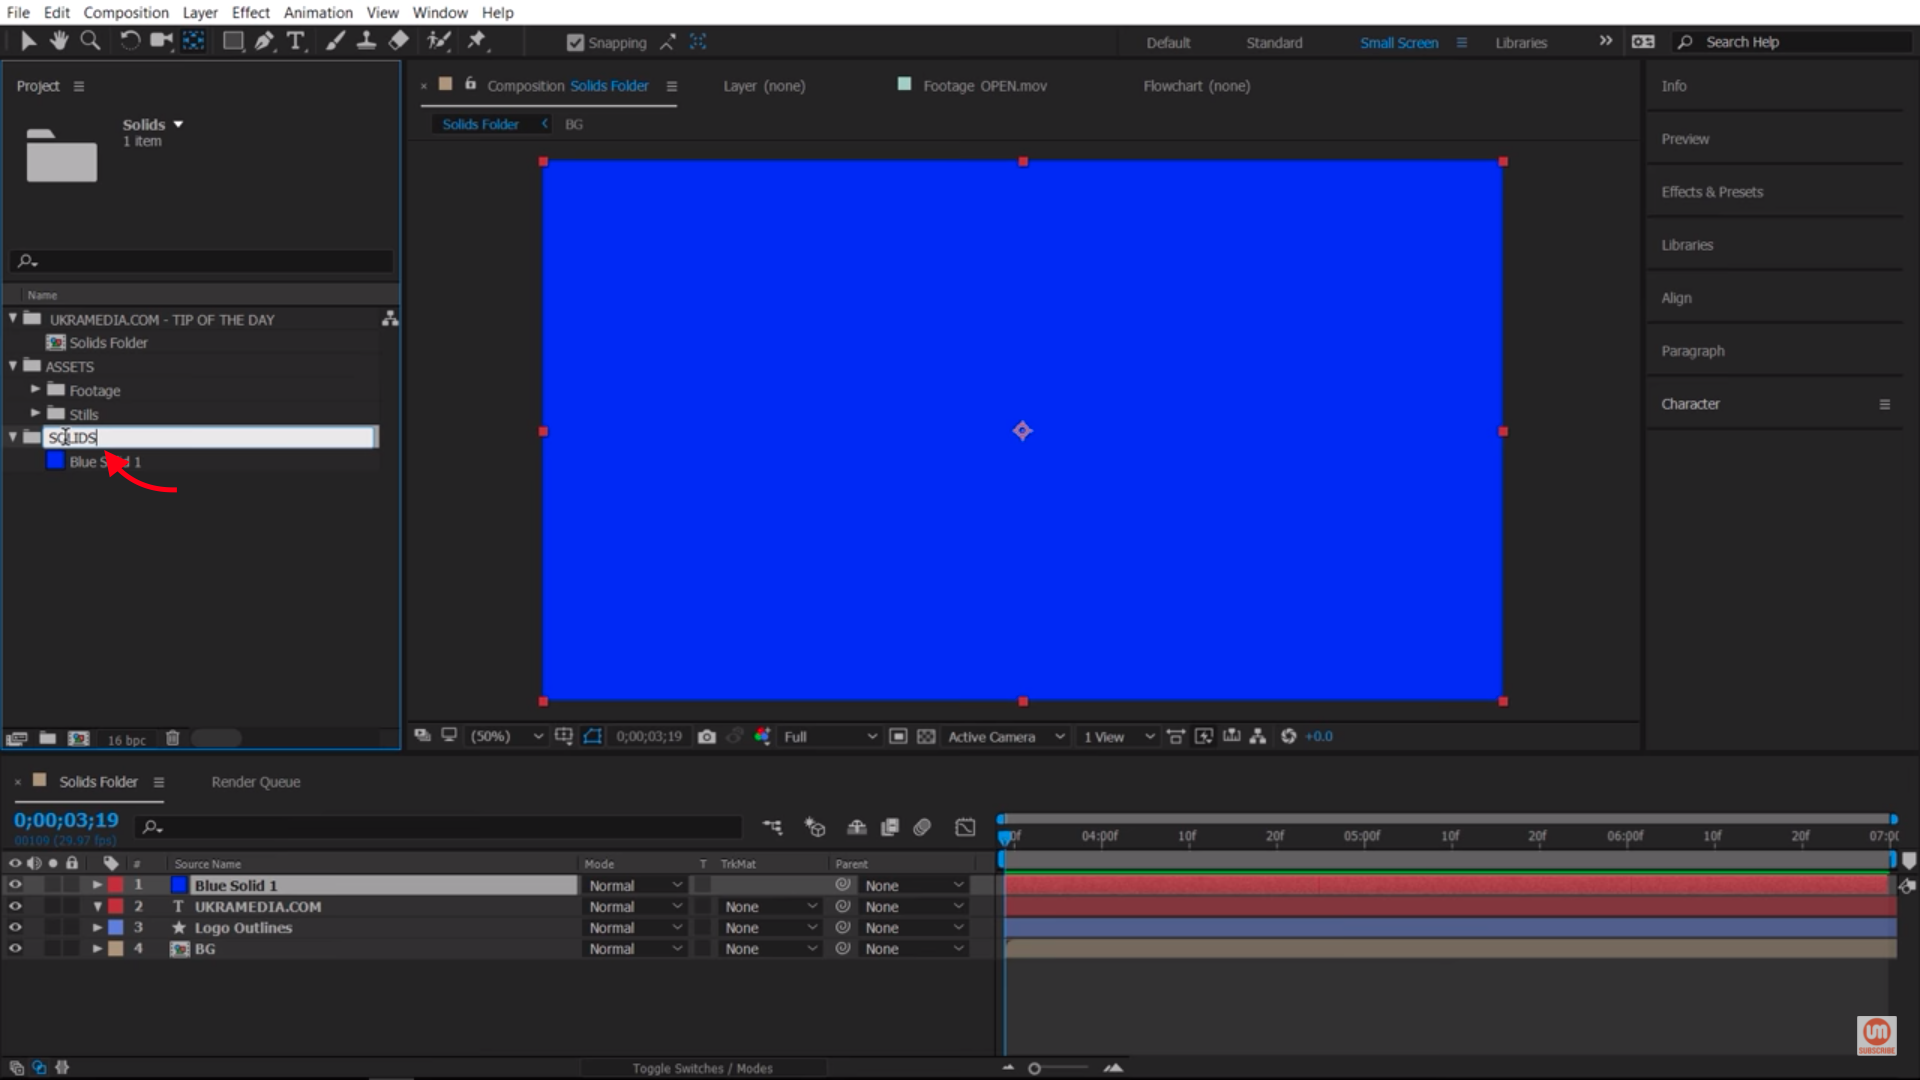 Renaming Solids Folder in After Effects